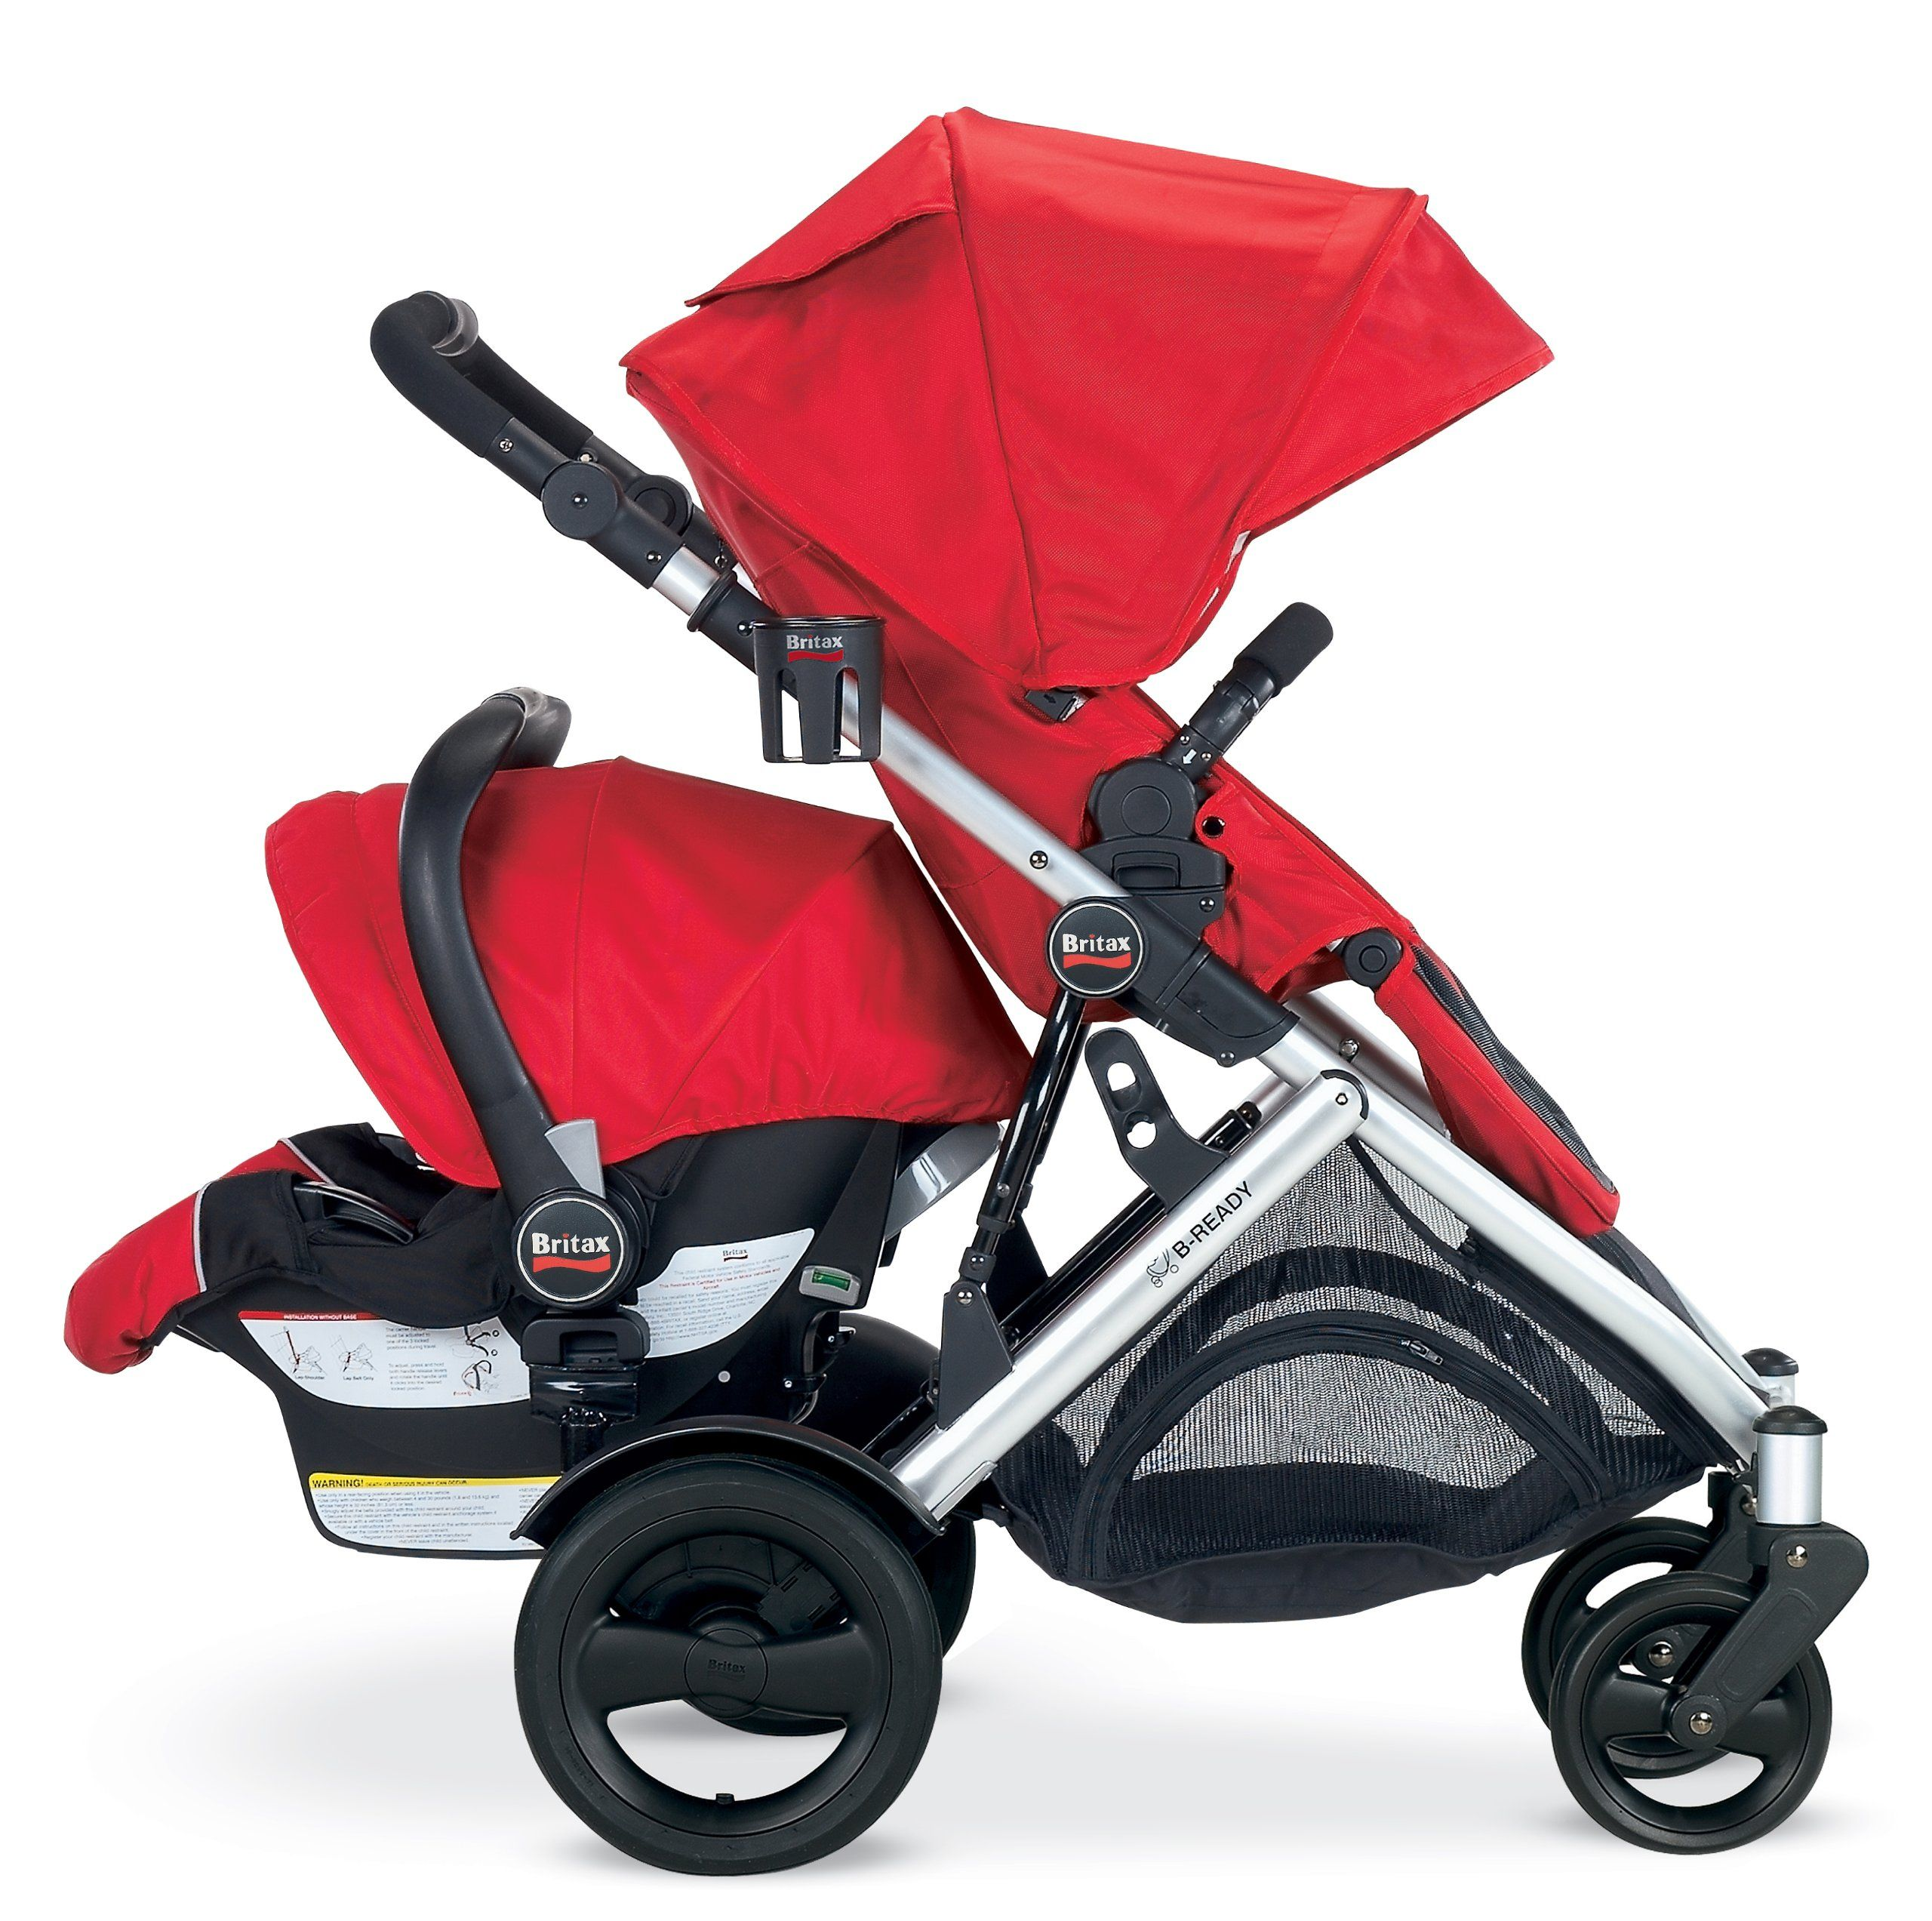 Amazon Britax B Ready Stroller 2012 Red Infant Car Seat Travel Systems Baby